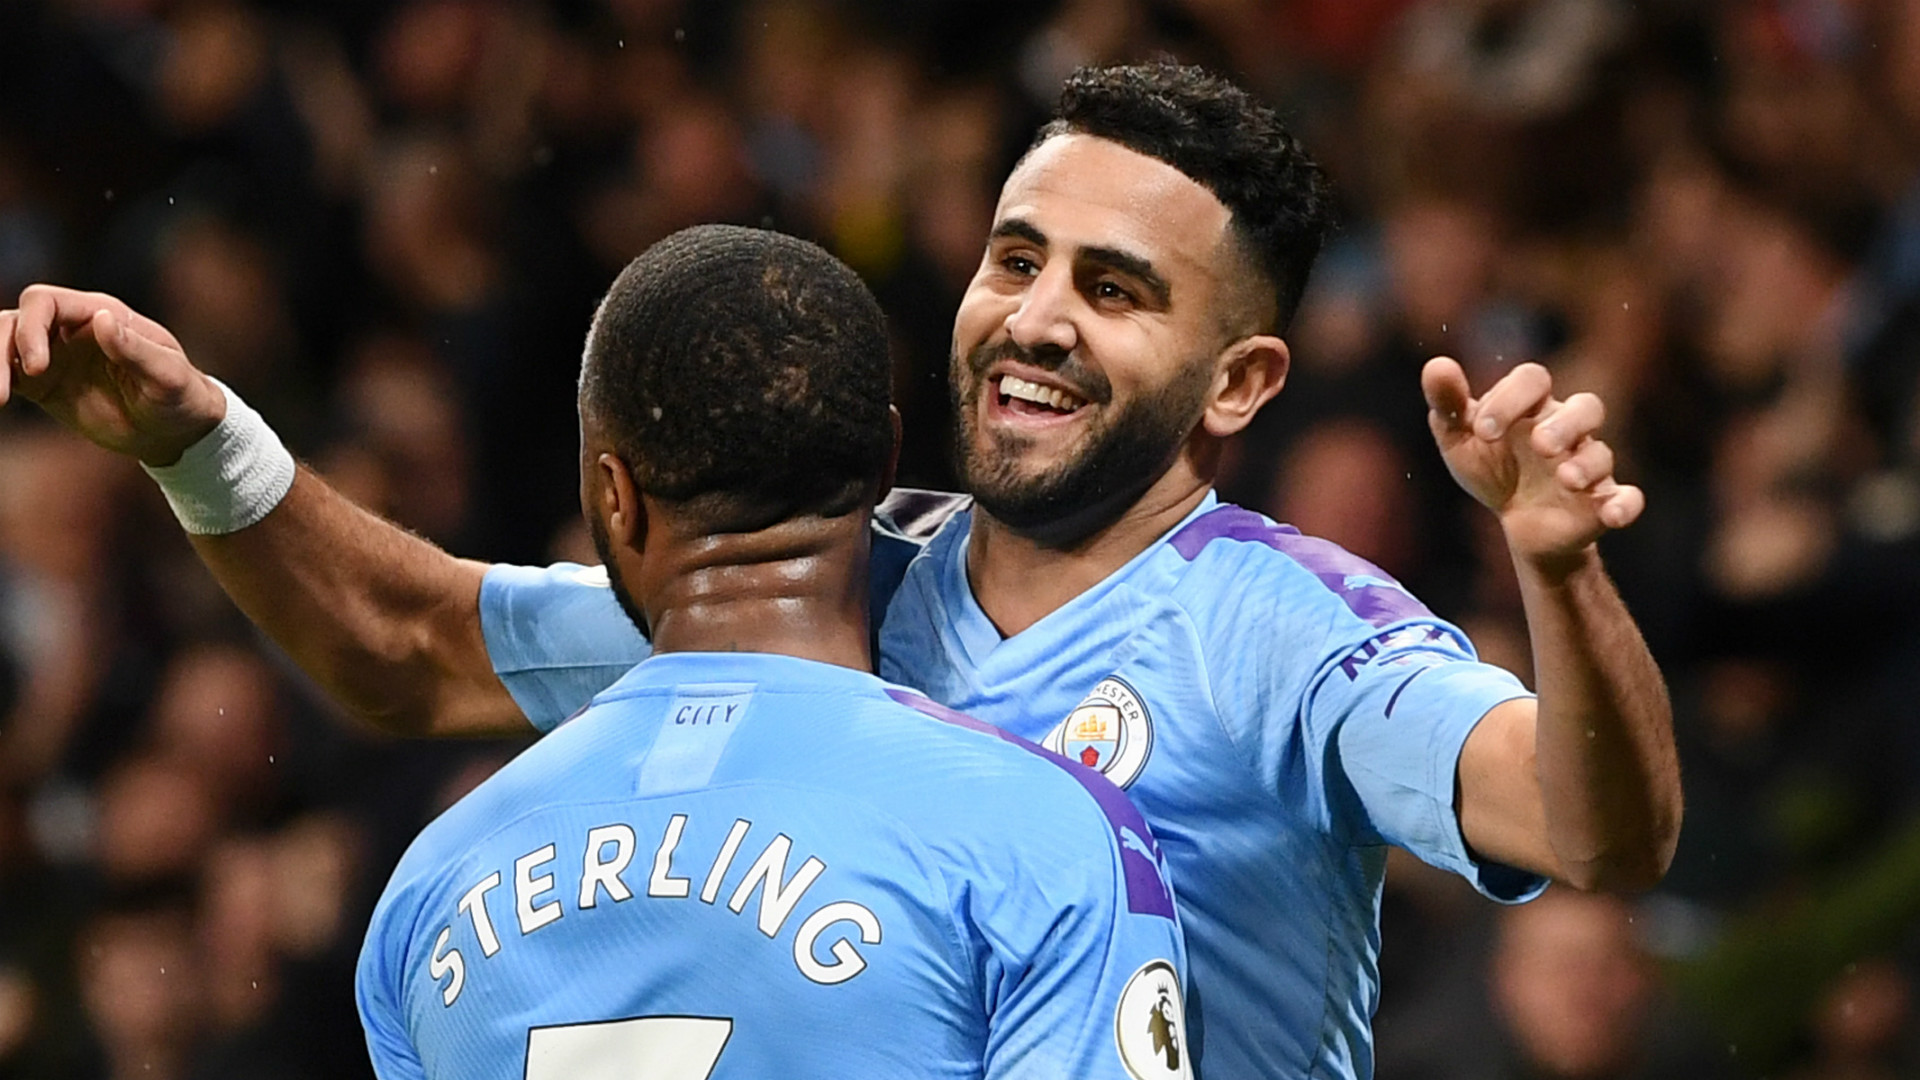 Mahrez at Man City to 'win, not just participate' as competition for places & trophies is embraced